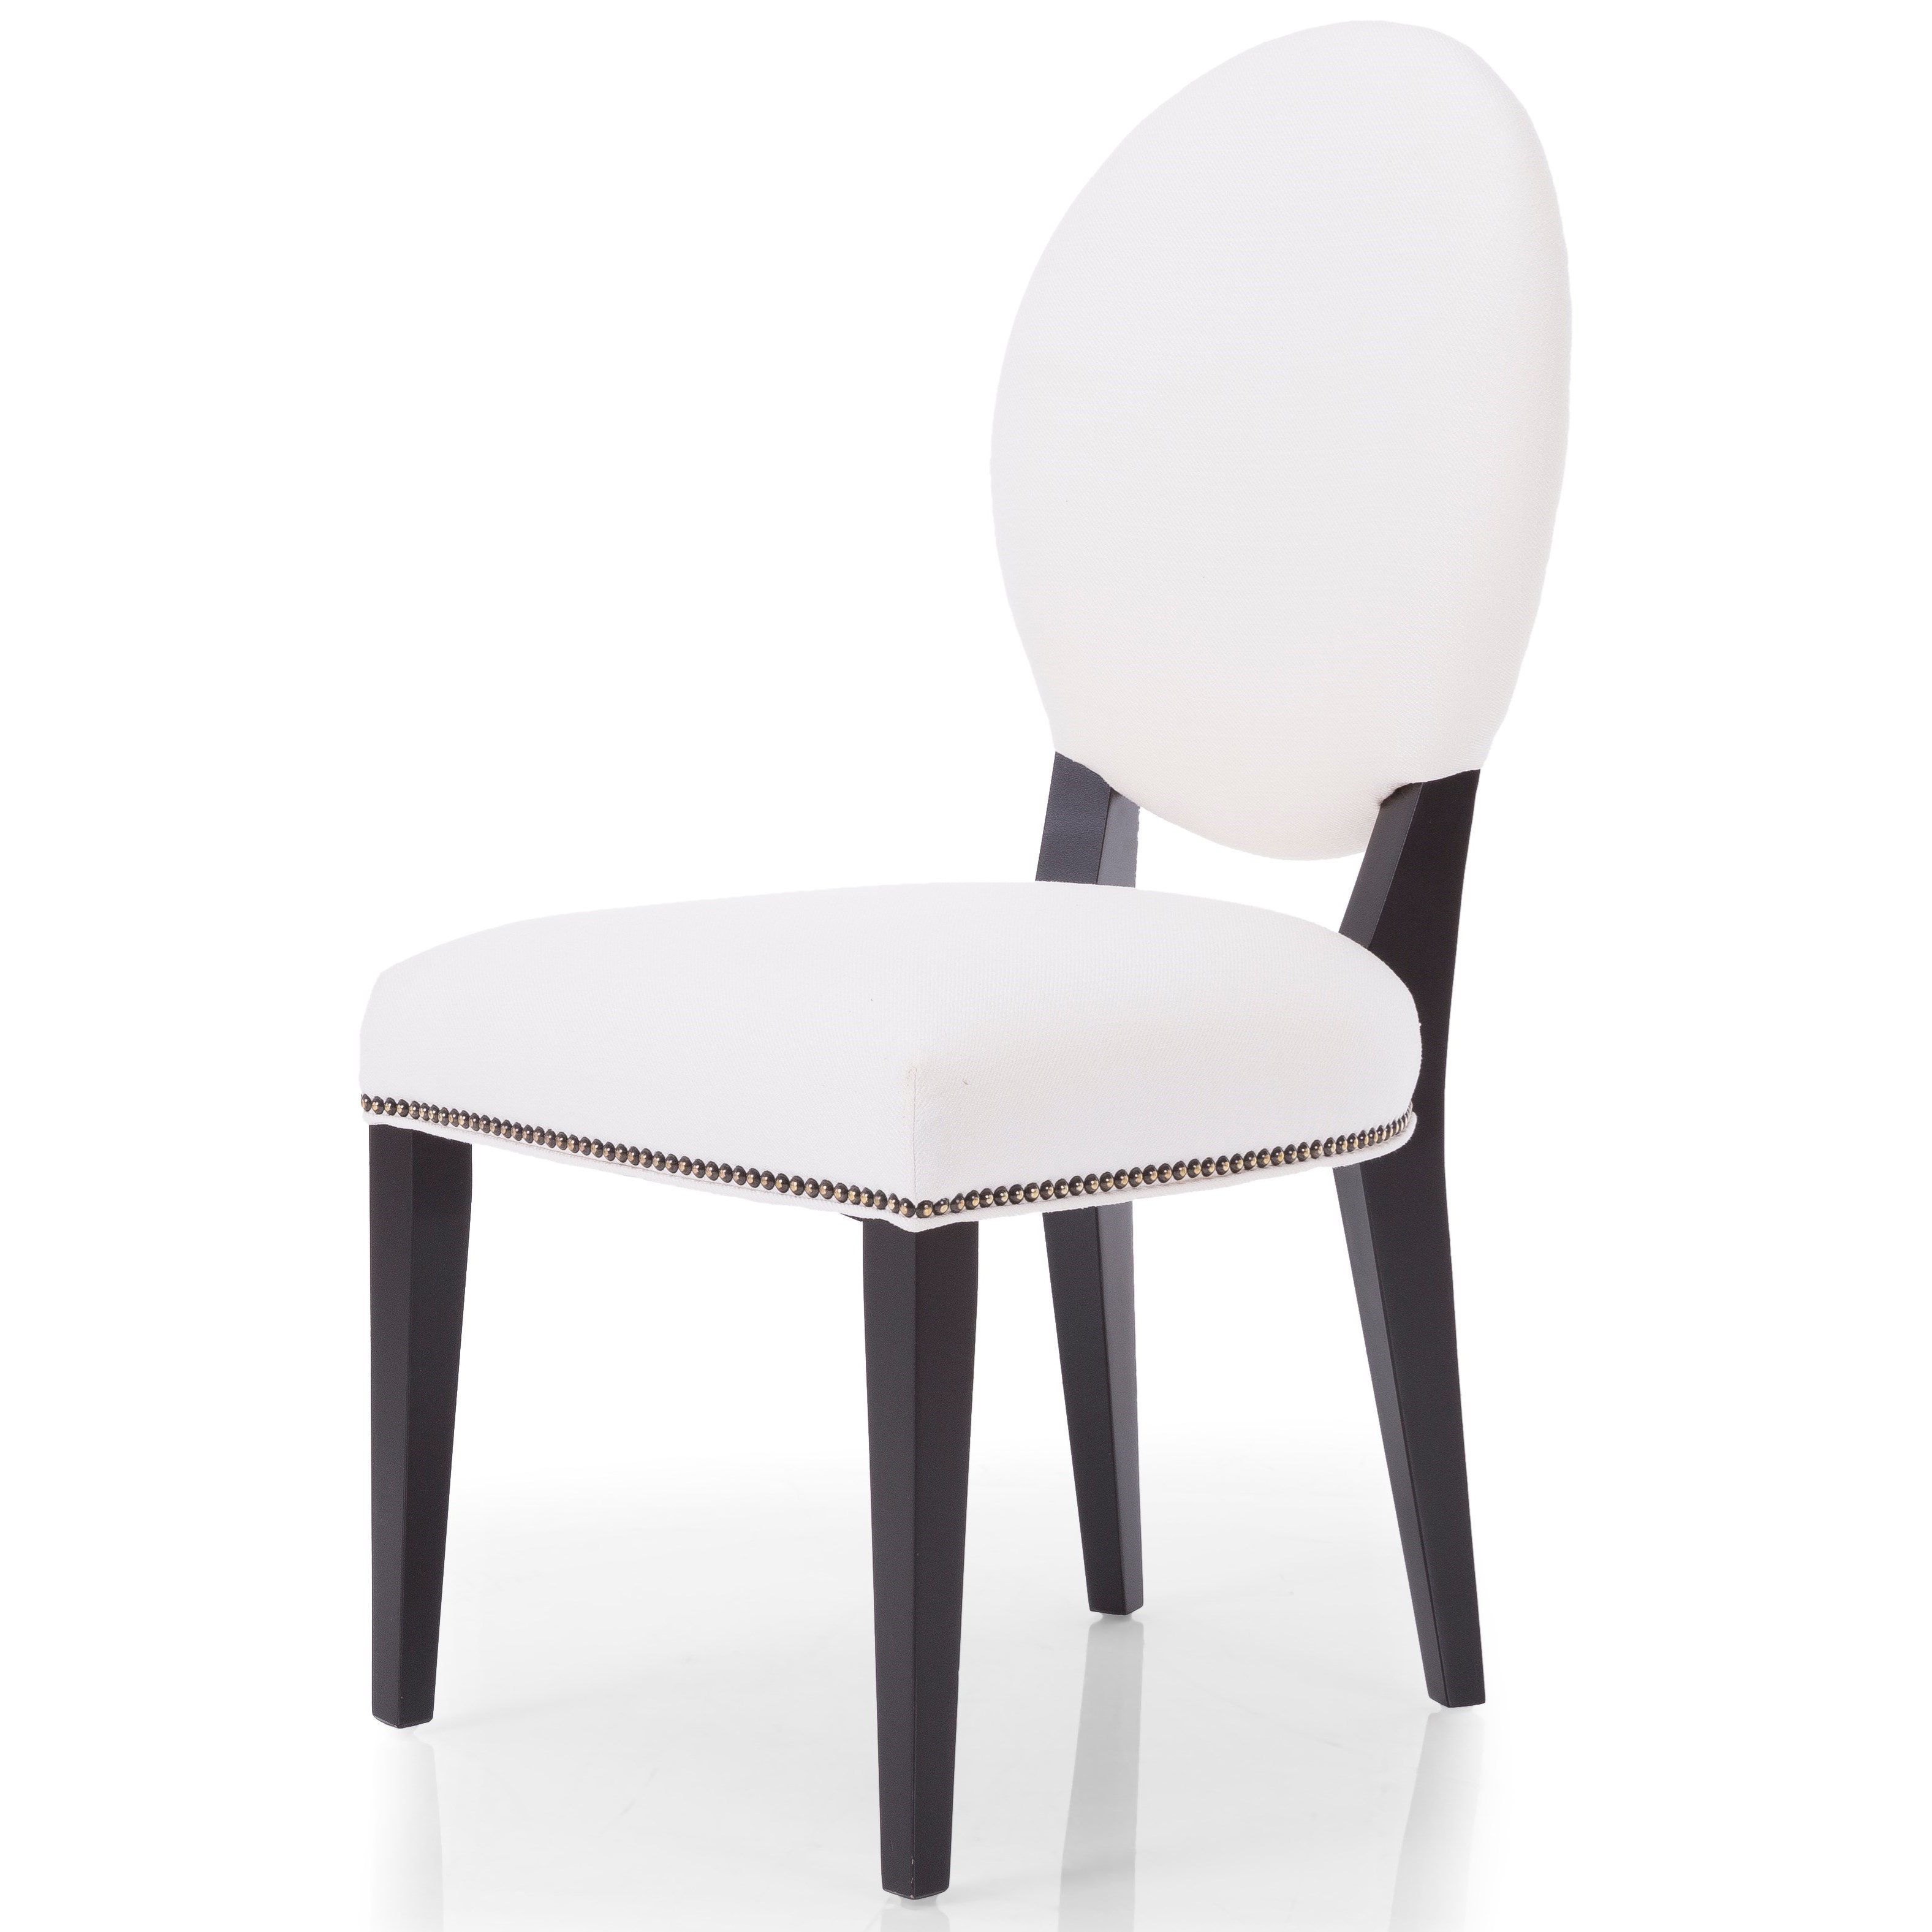 2621 Dining Side Chair by Decor-Rest at Johnny Janosik